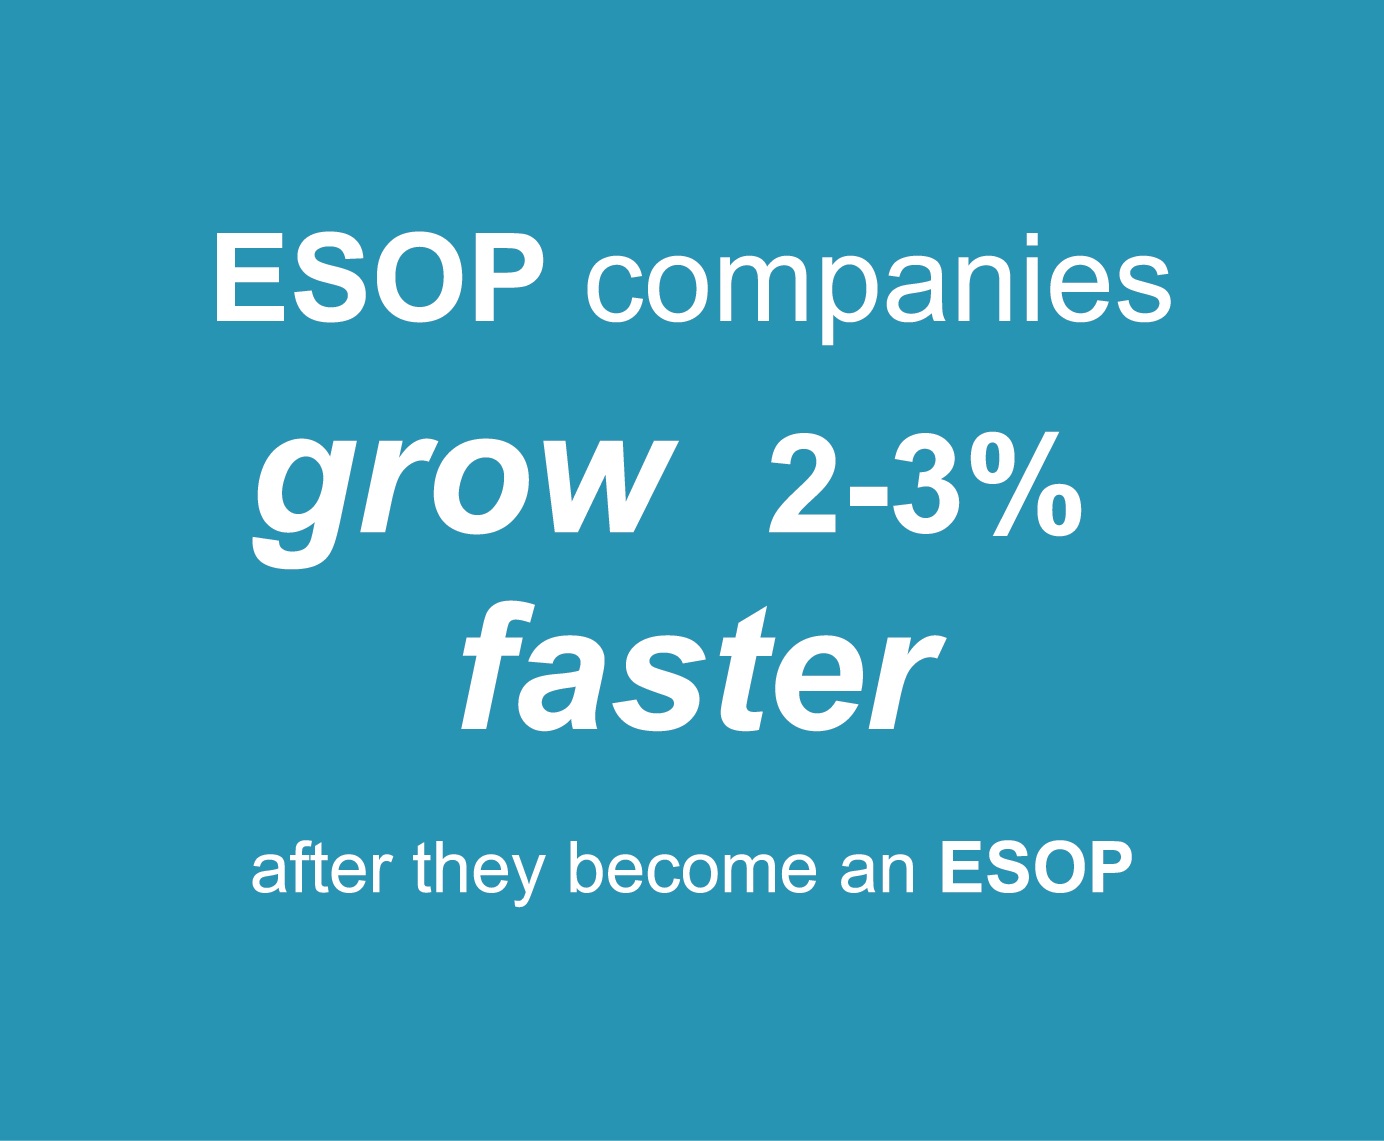 ESOP companies grow 2-3% faster after they become an ESOP.